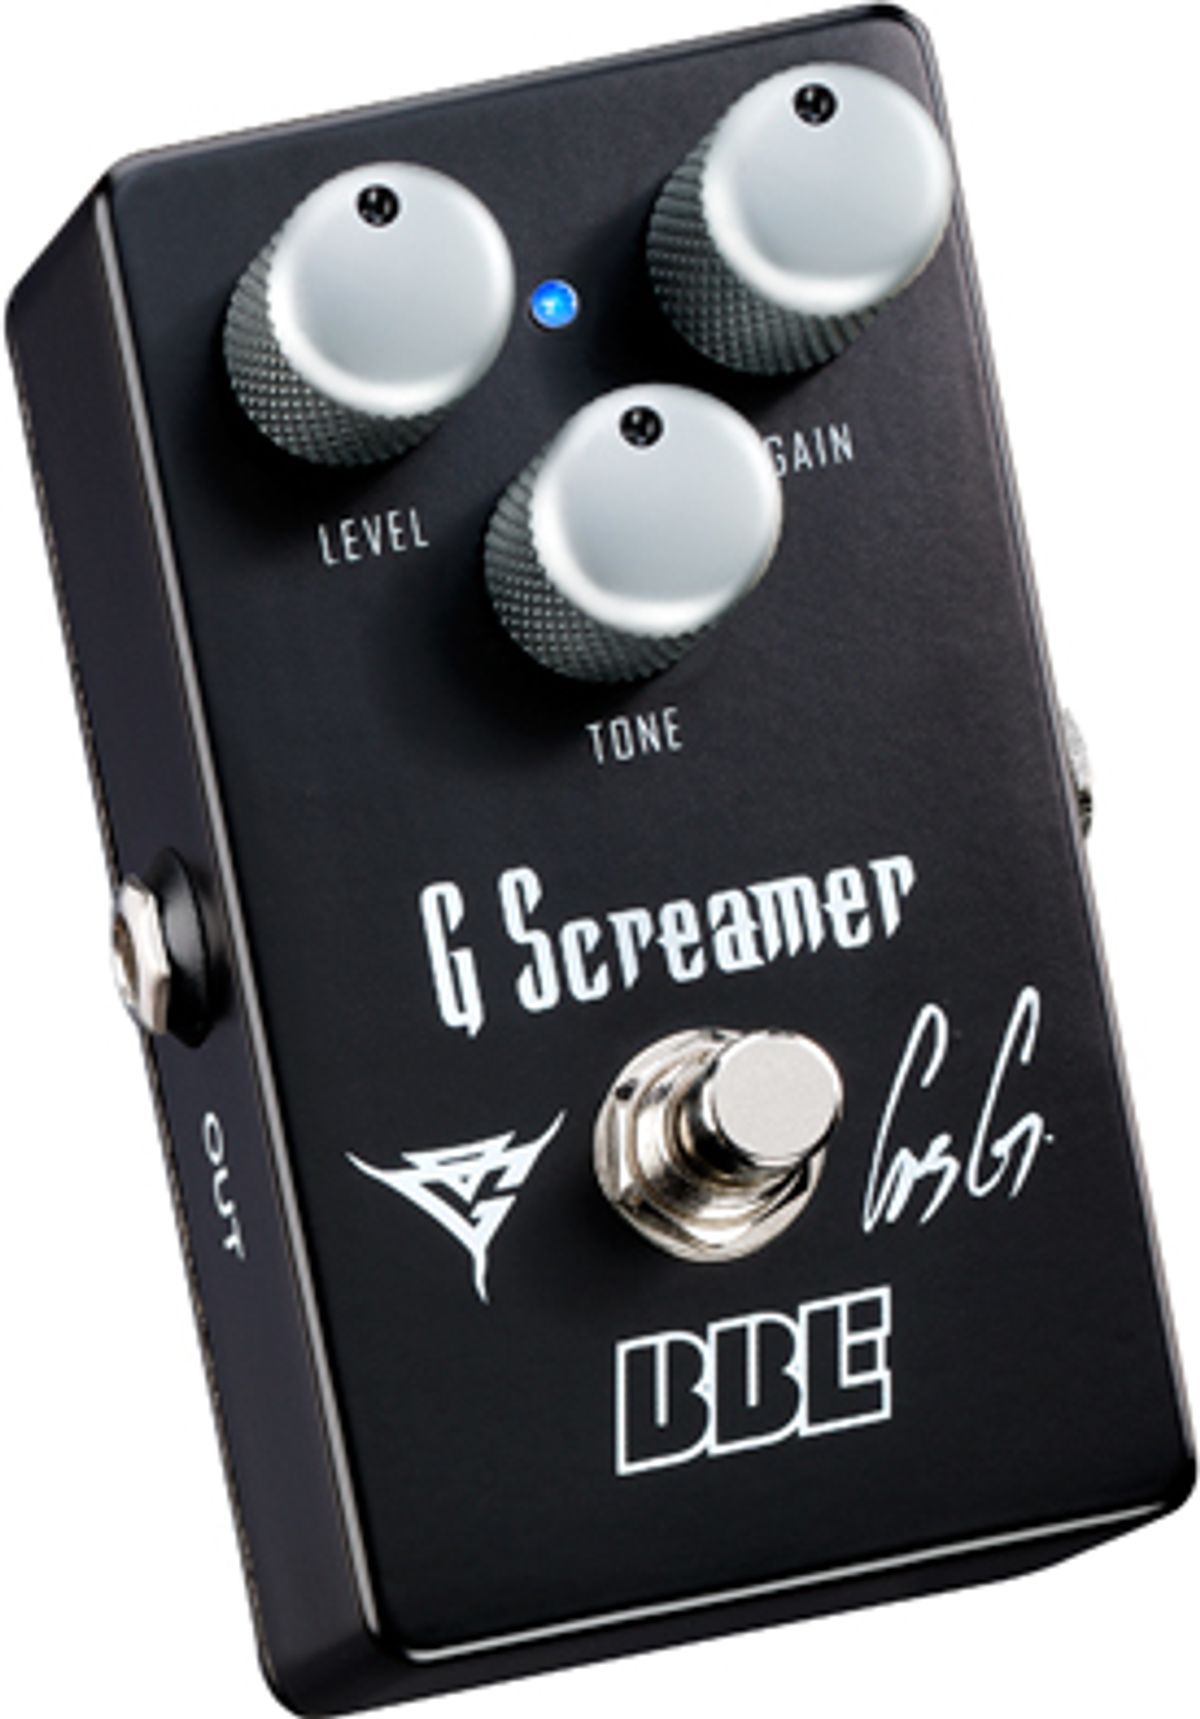 BBE Releases Gus G OG-1 Signature Overdrive